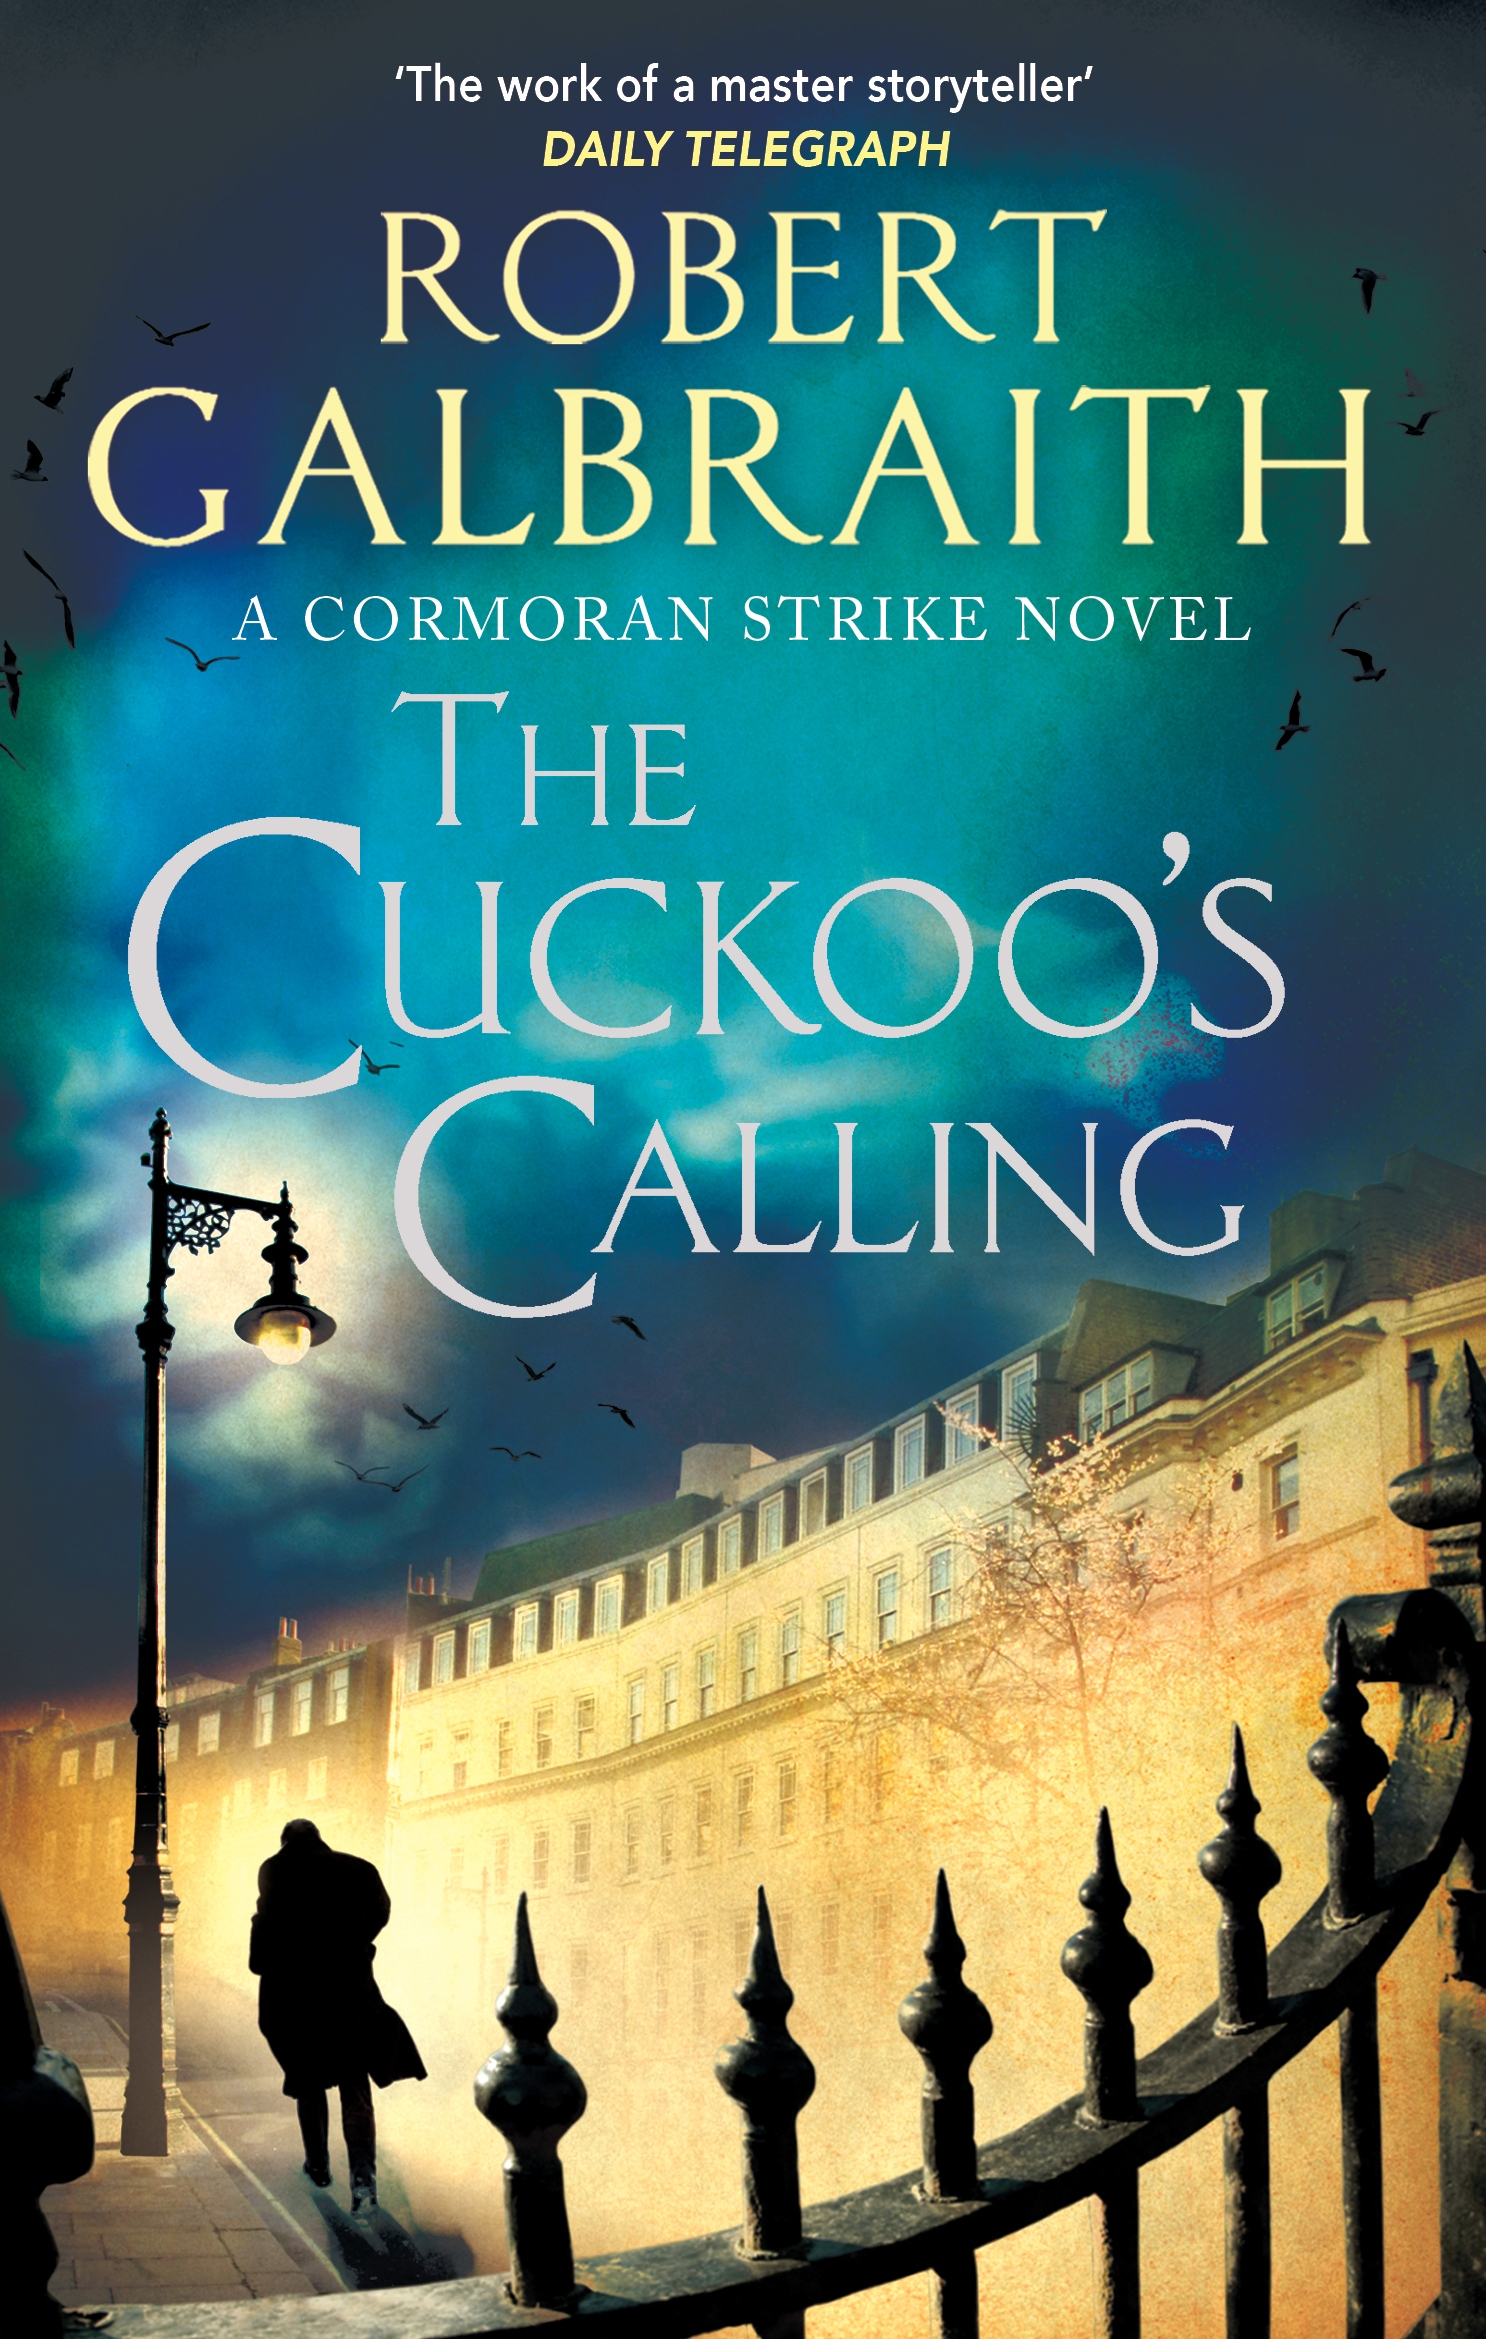 The Cuckoo's Calling: Opening Extract | Hachette UK